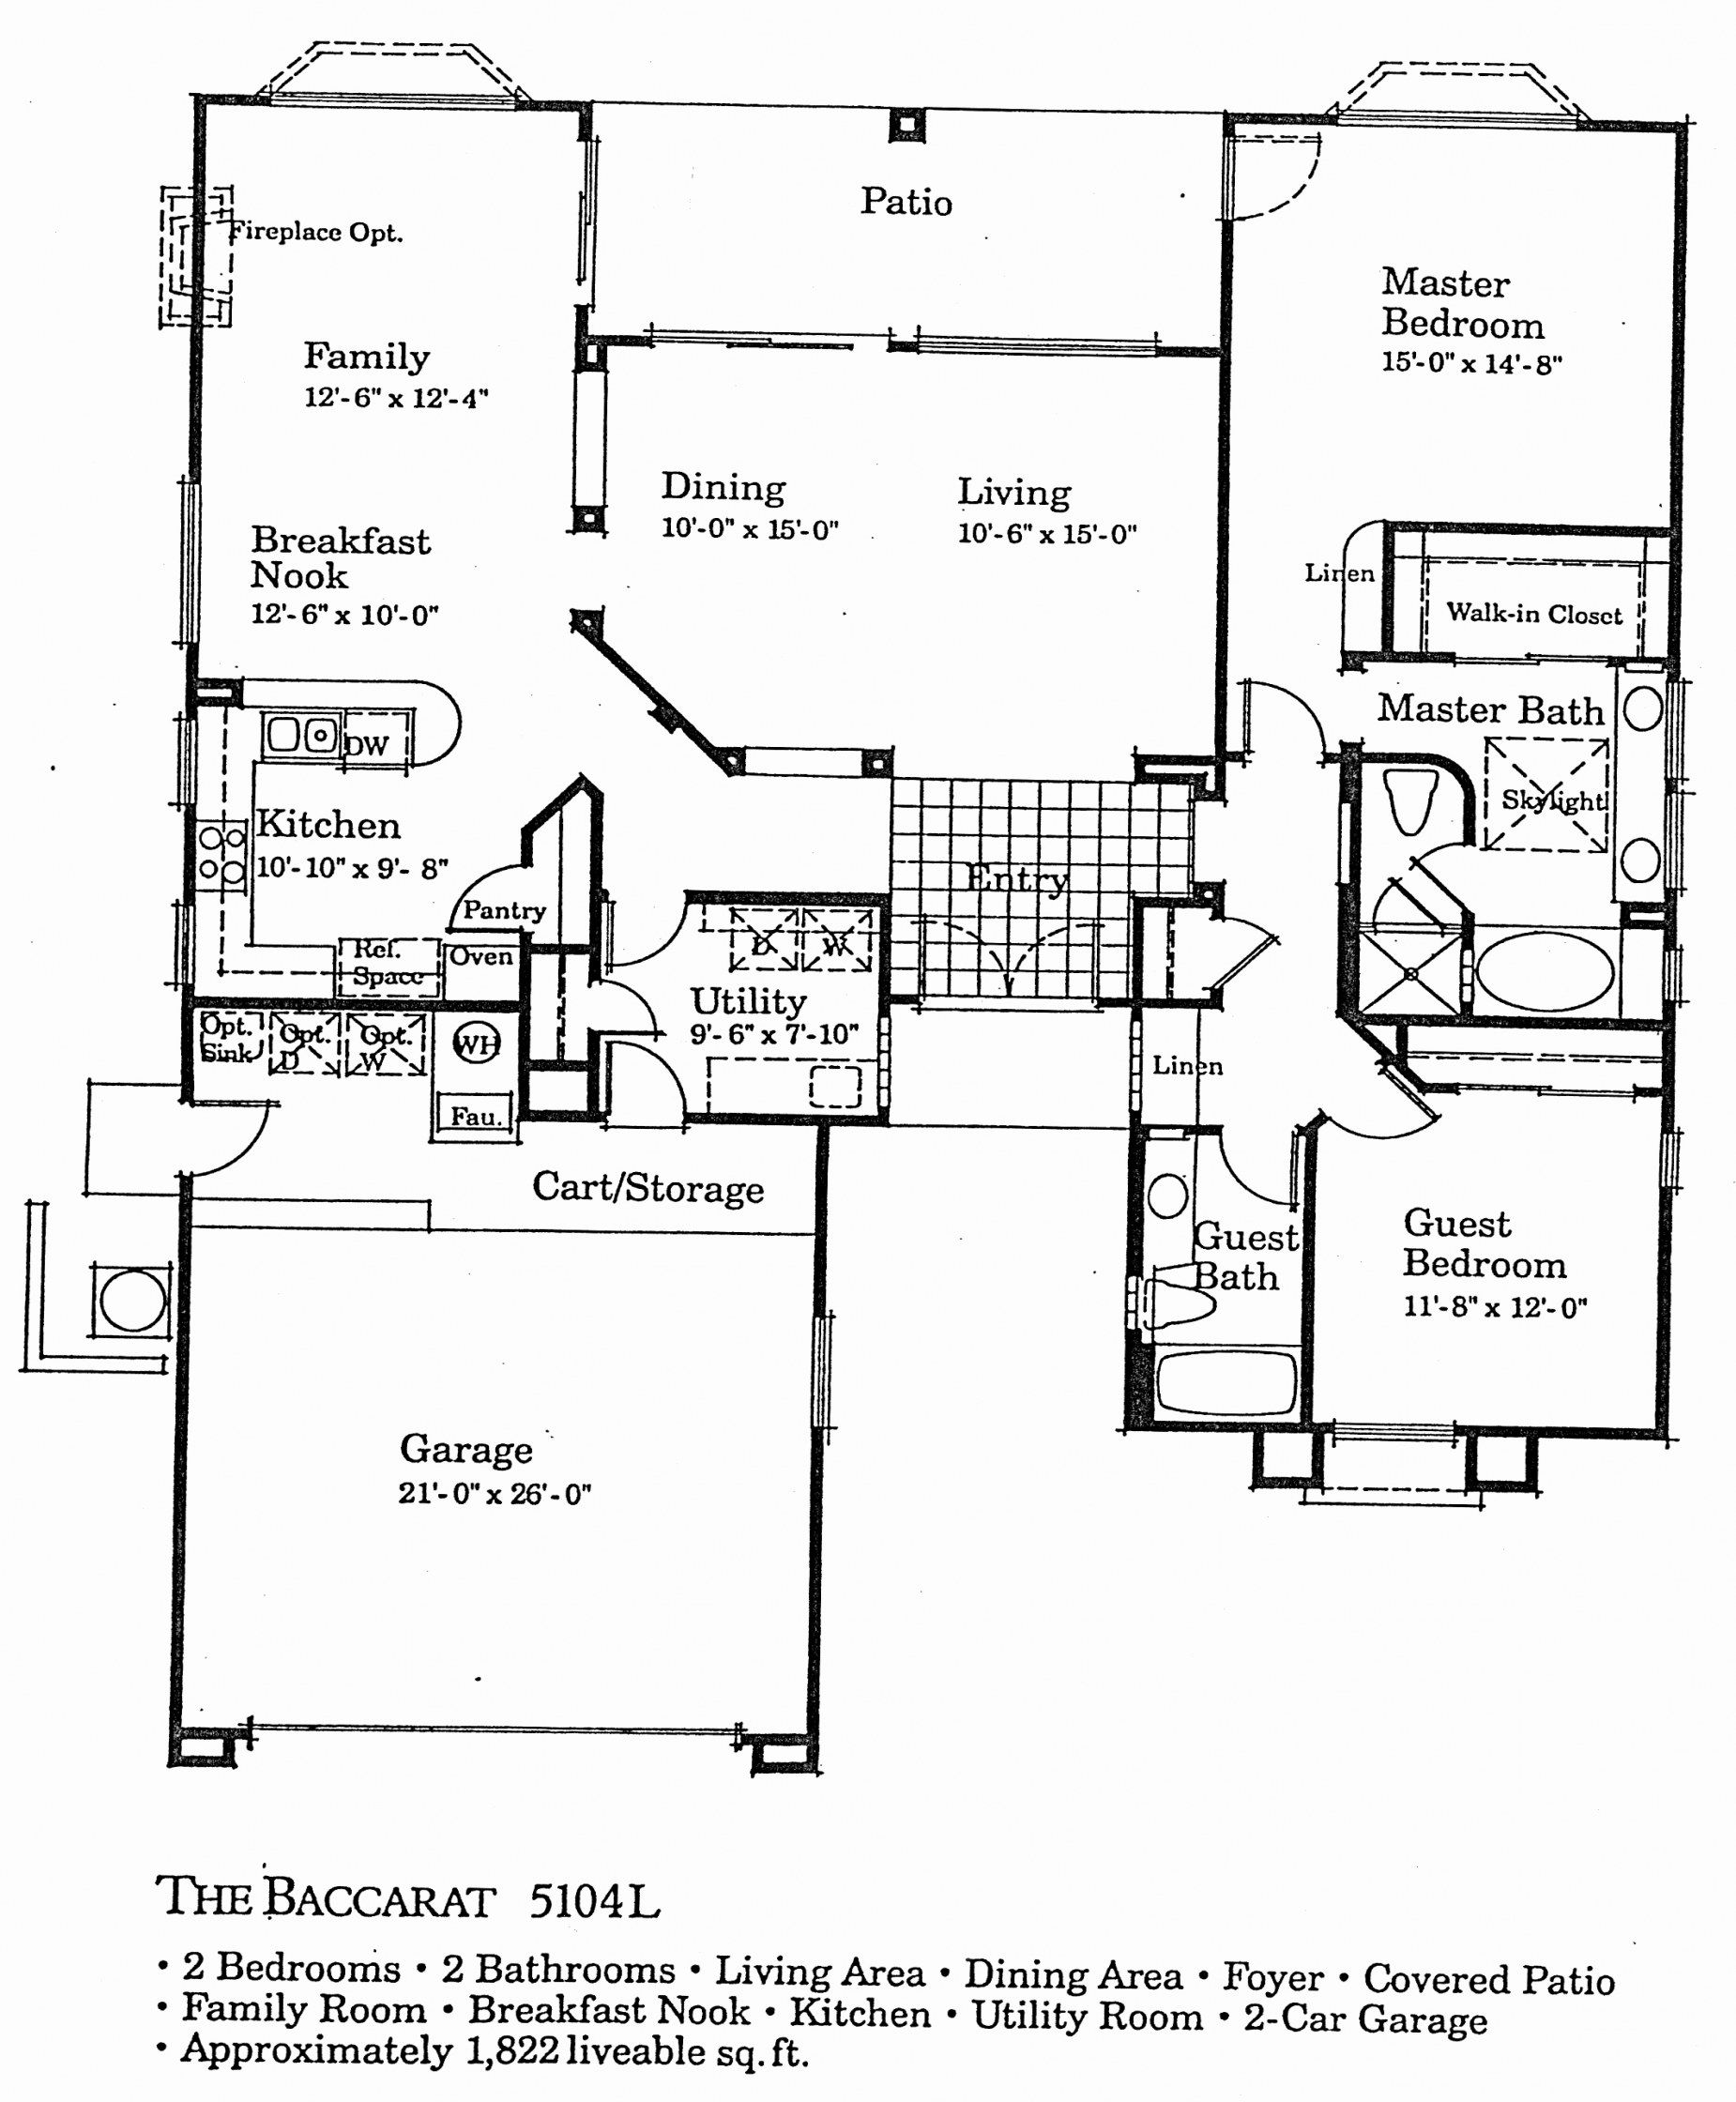 Awesome Kitchen Floor Plans With Walk In Pantry And Review Hidup Sehat